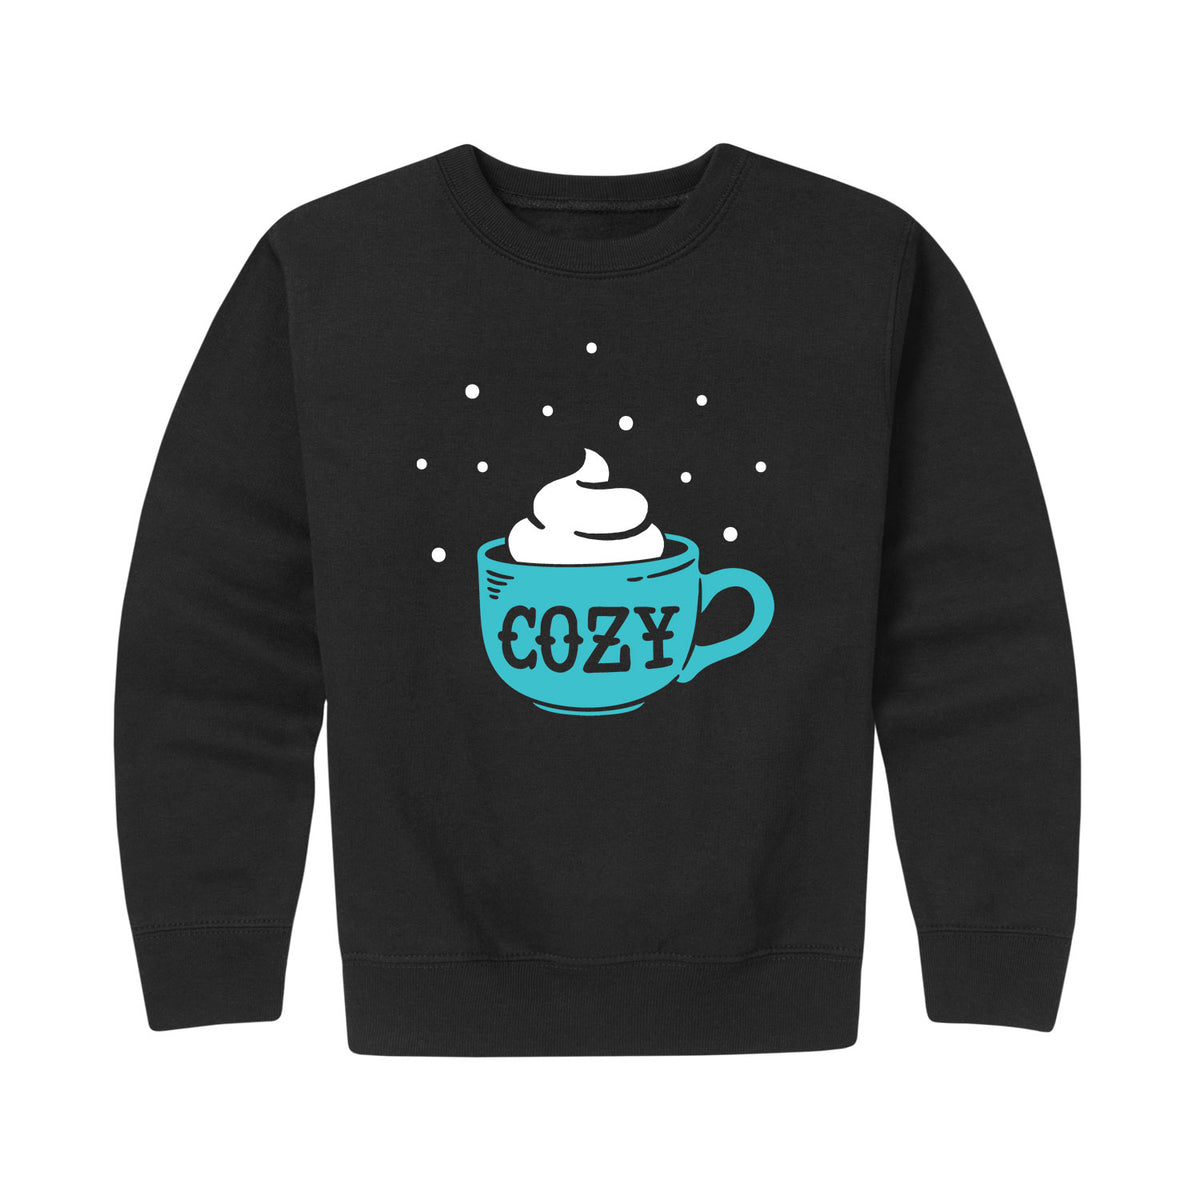 Cozy Mug - Youth & Toddler Crew Neck Fleece